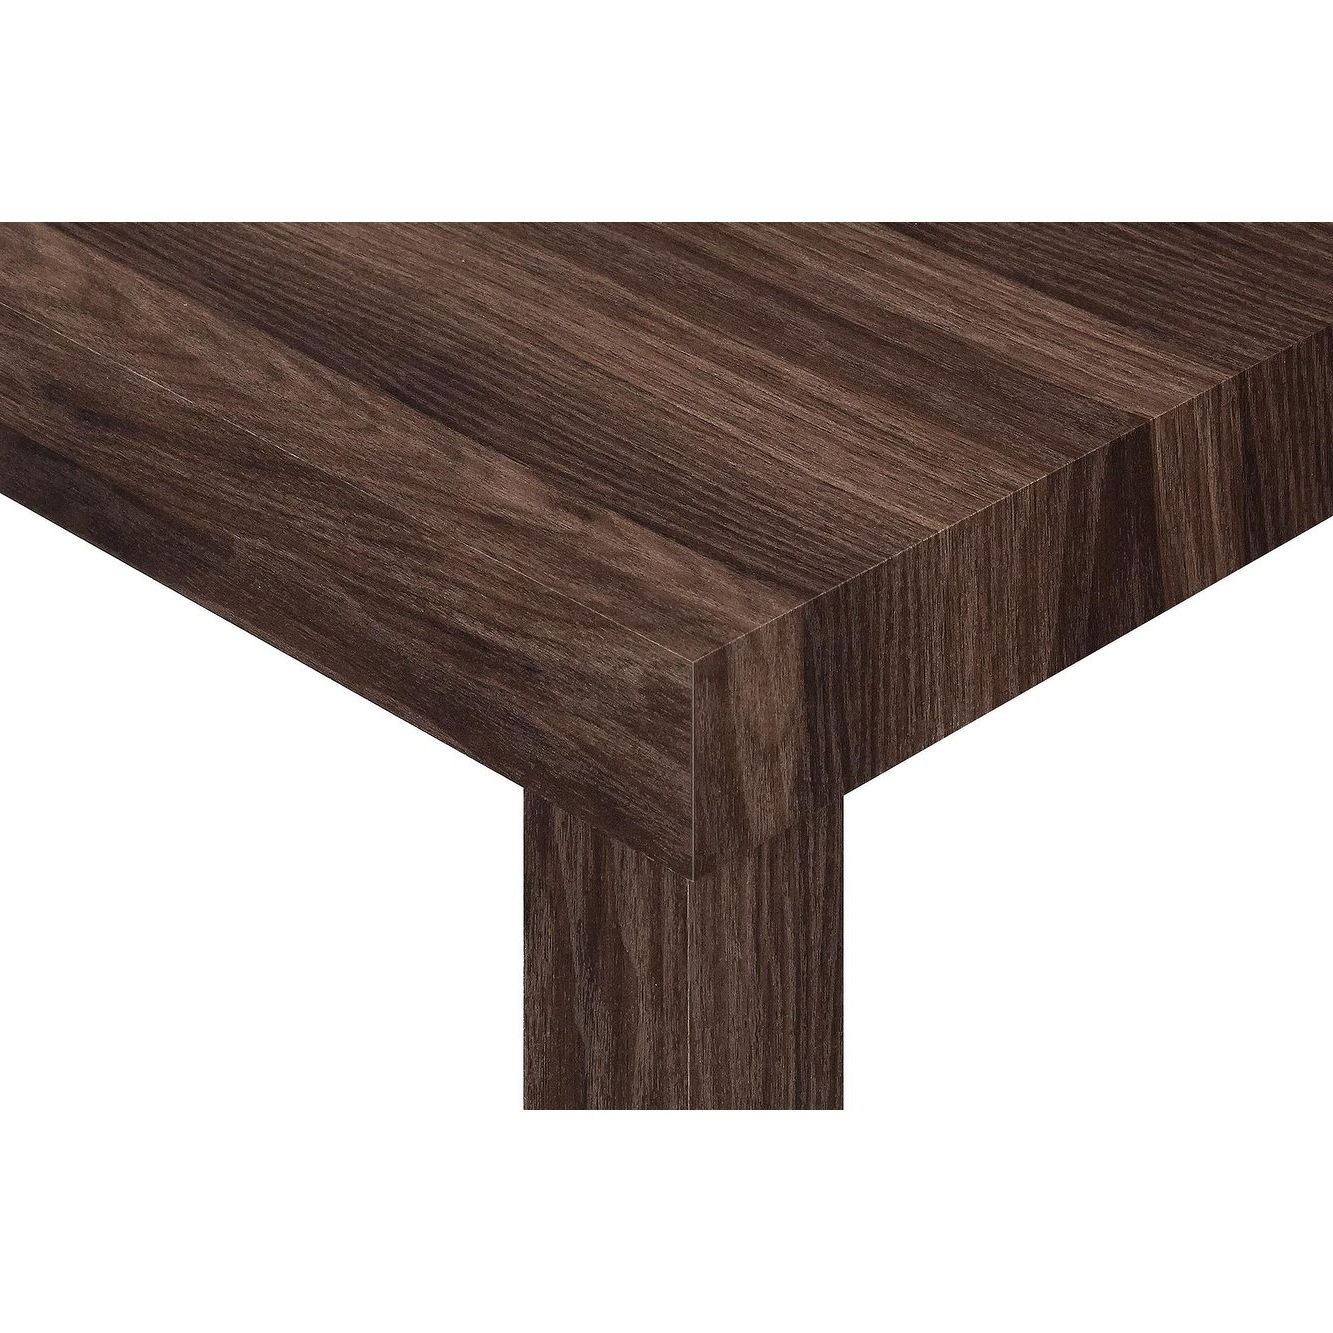 Shop Avenue Greene Jaxon Walnut Coffee Table – Free Shipping Today Throughout Trendy Jaxon Cocktail Tables (Gallery 20 of 20)